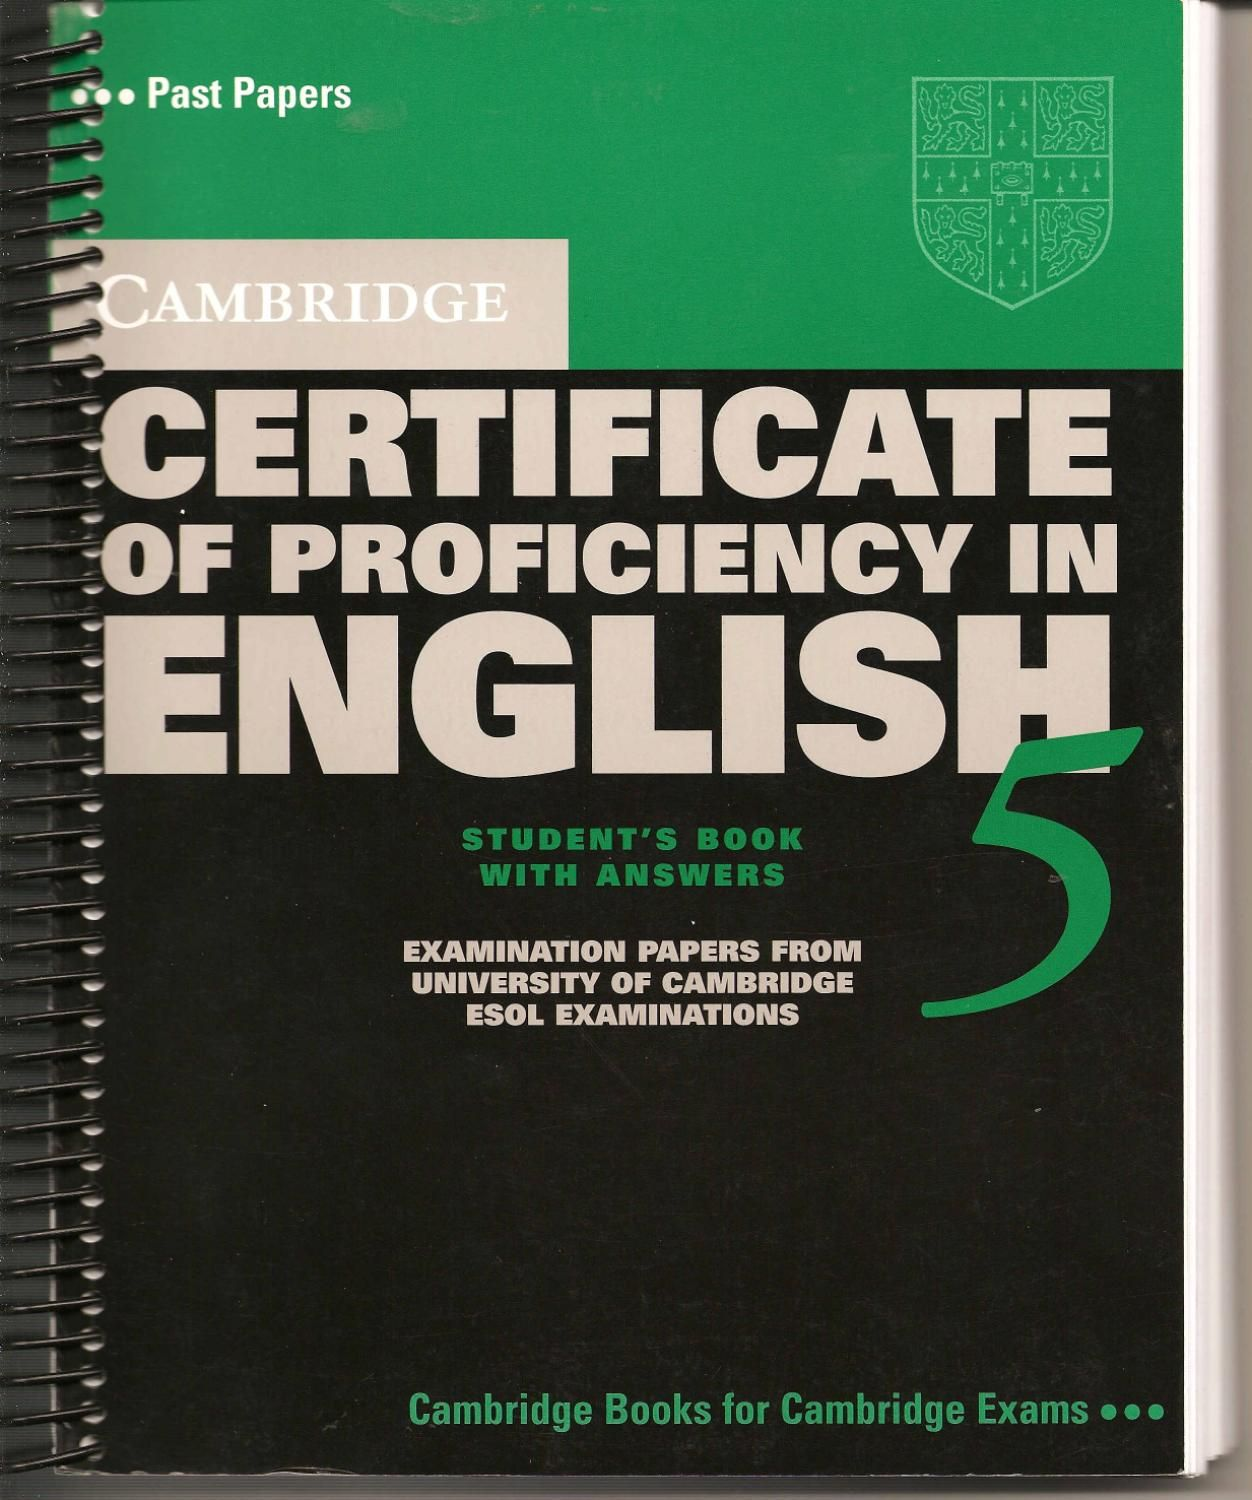 Ingles Basico Libro Cambridge Proficiency Book Ideas Pinterest Gramática